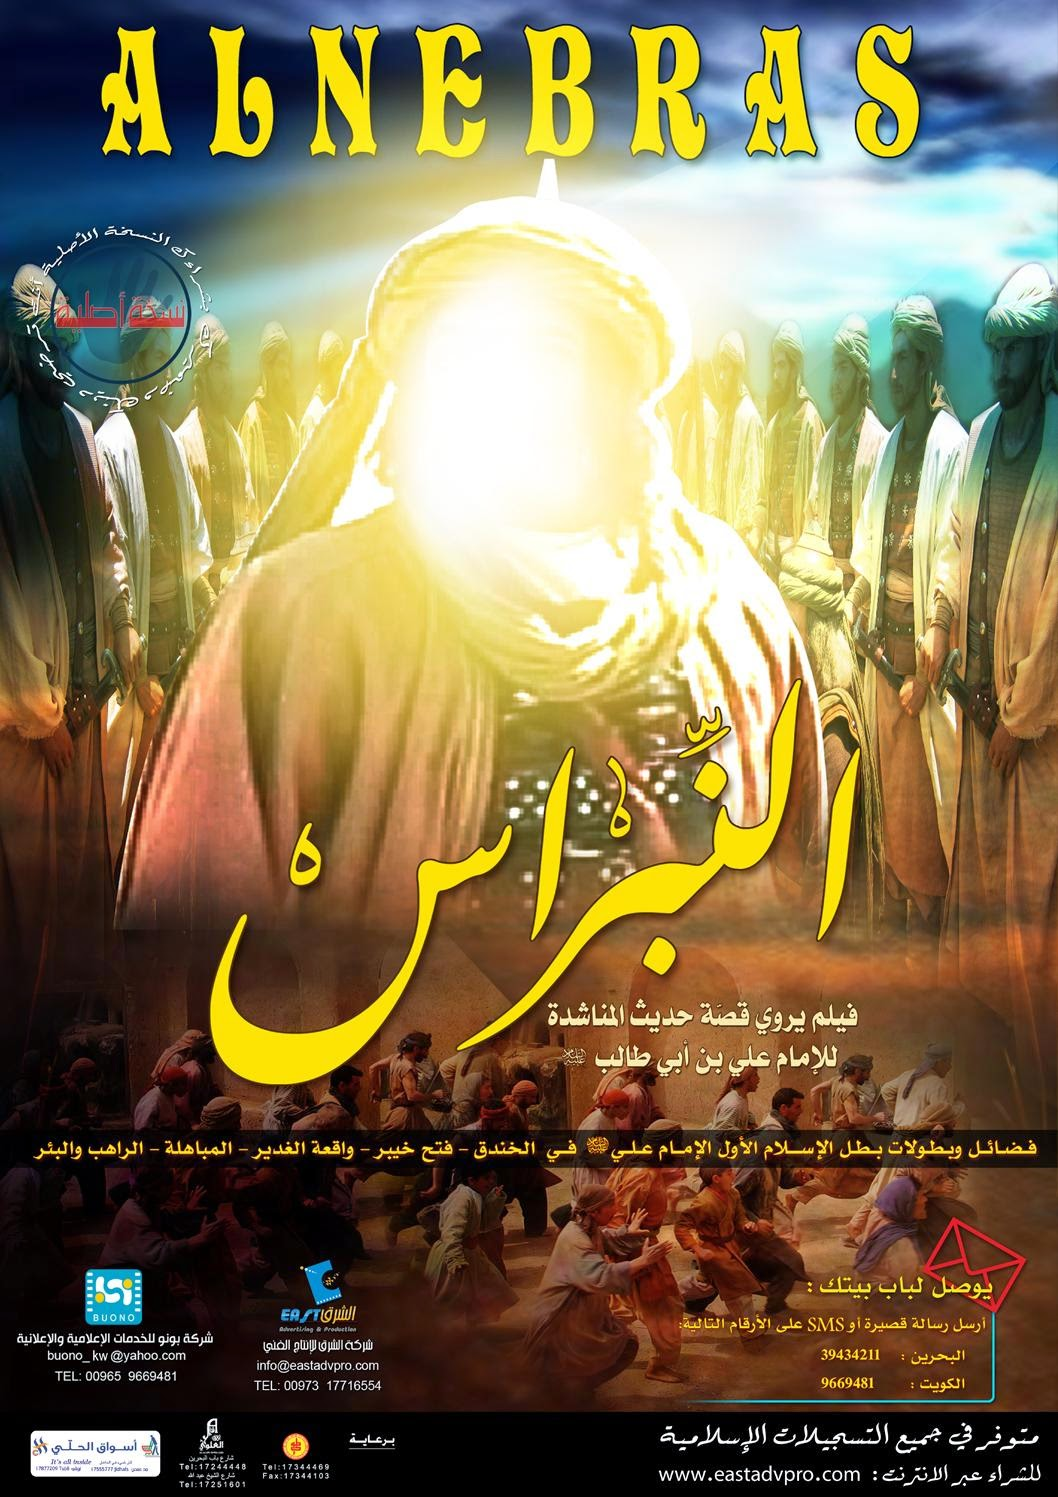 alnebras imam ali as full movie in urdu watch online